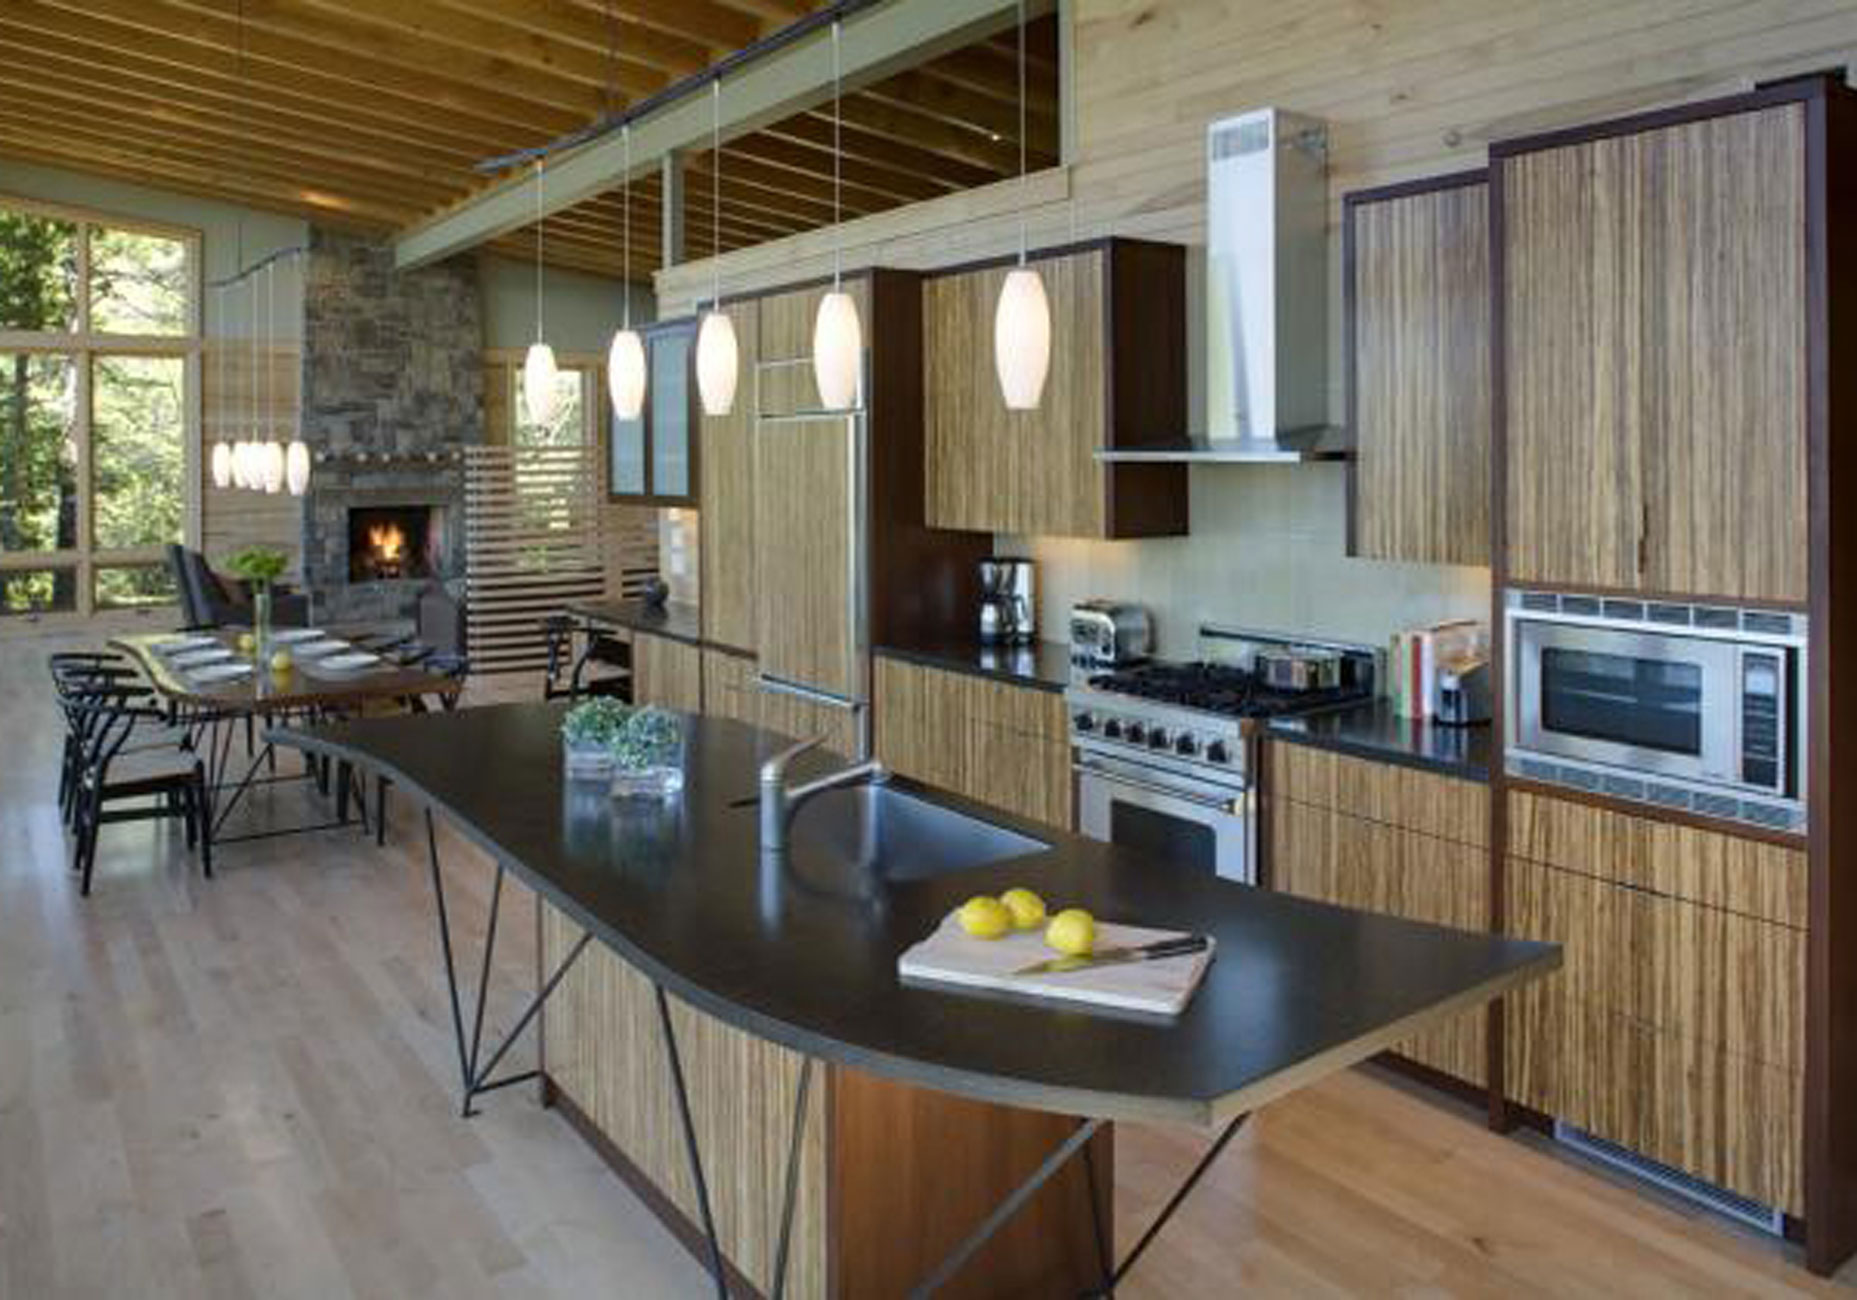 Modern lake house with amazing interior design from finne architect kitchen